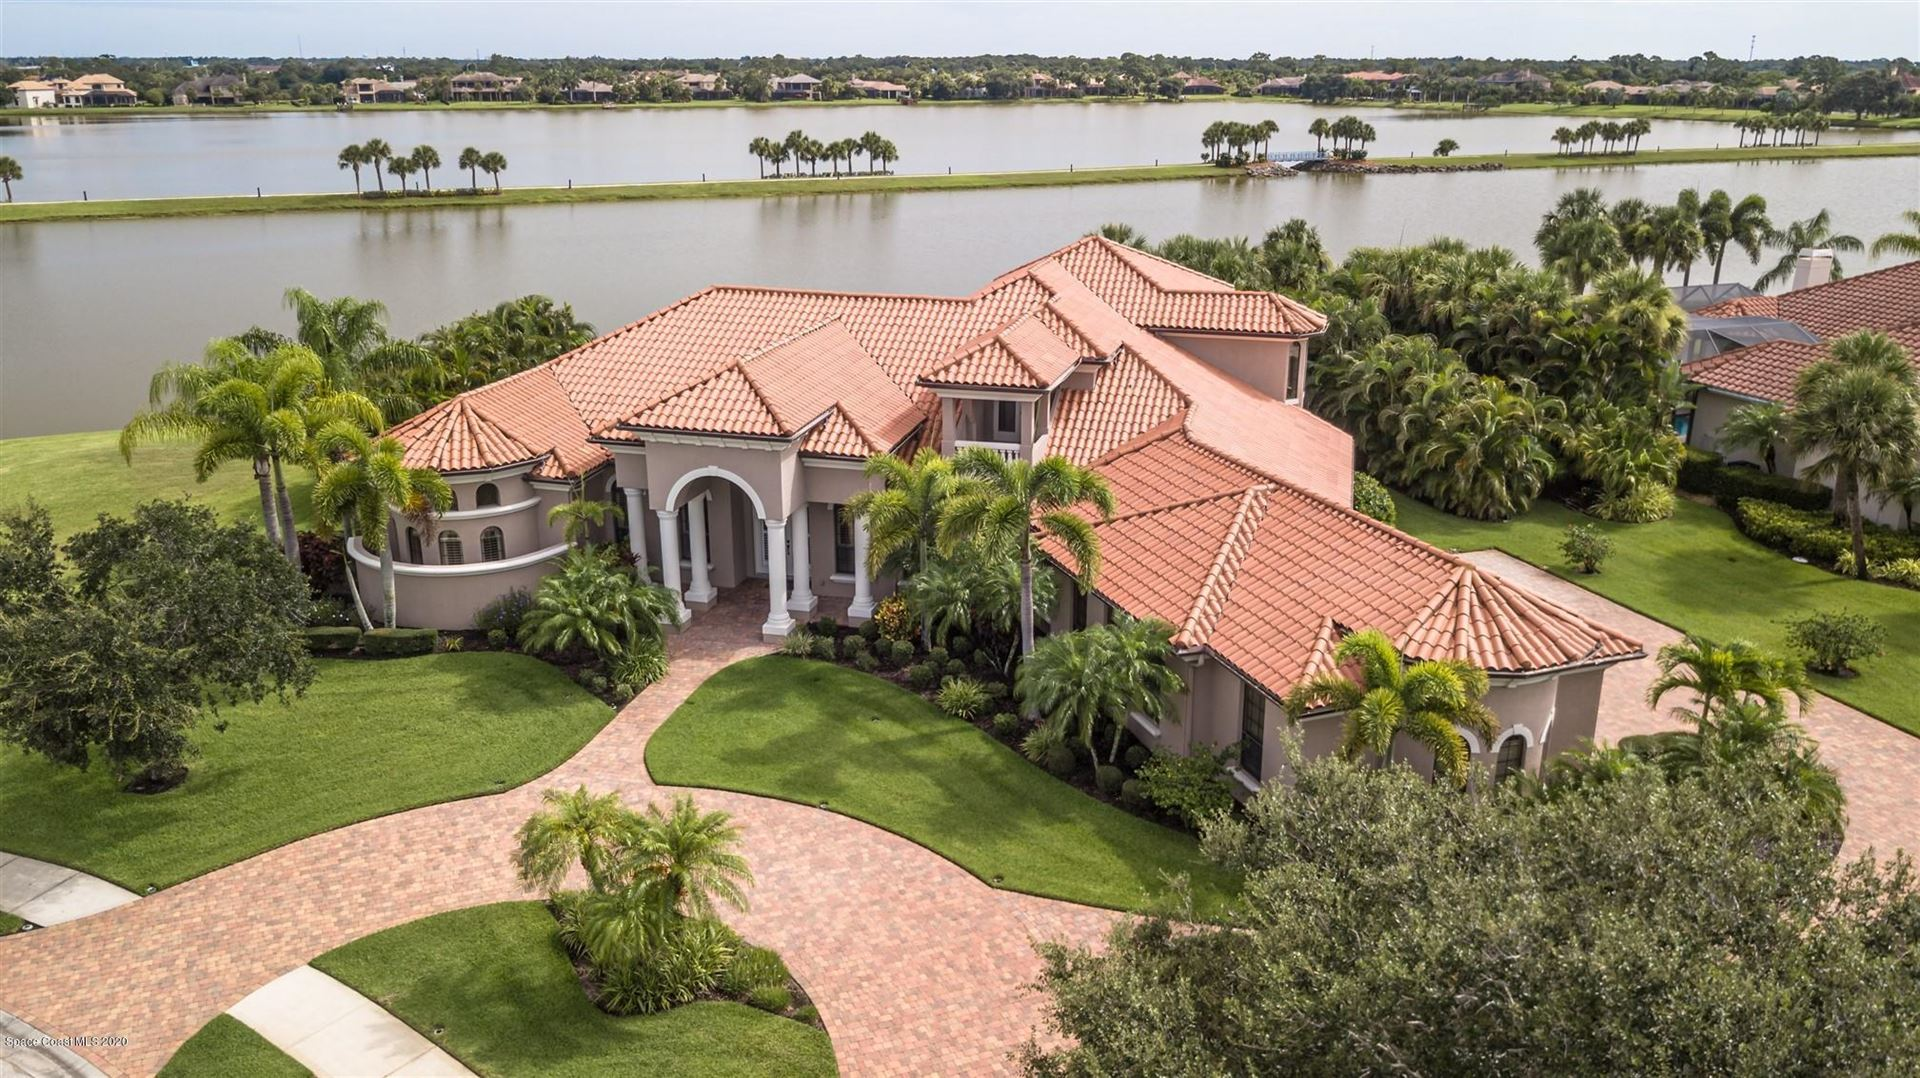 2803 Bellwind Circle, Rockledge, FL 32955 - #: 881992